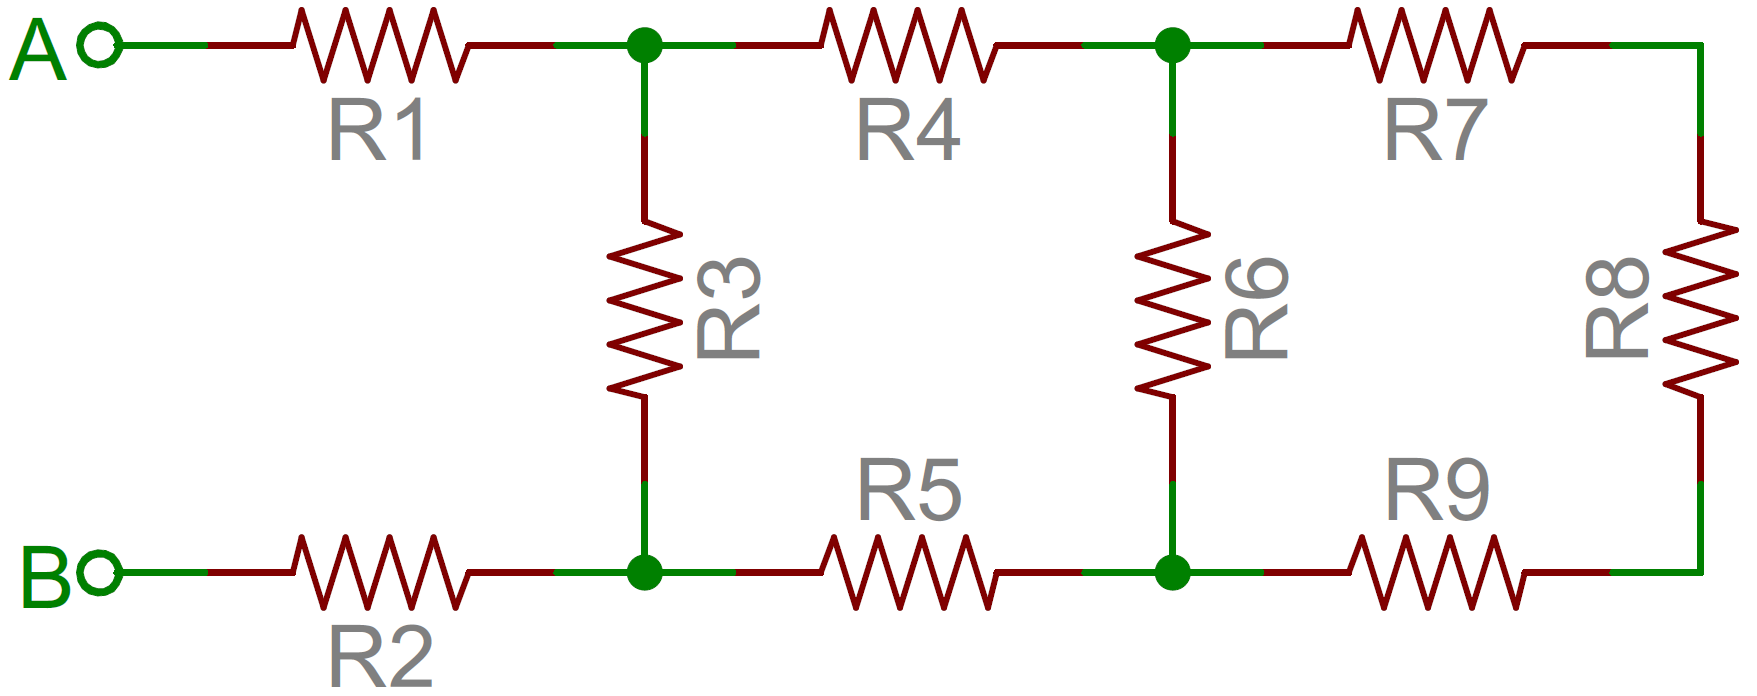 Resistors Thorough And Provides A Great Introduction To Electric Circuits An Example Of Resistor Network